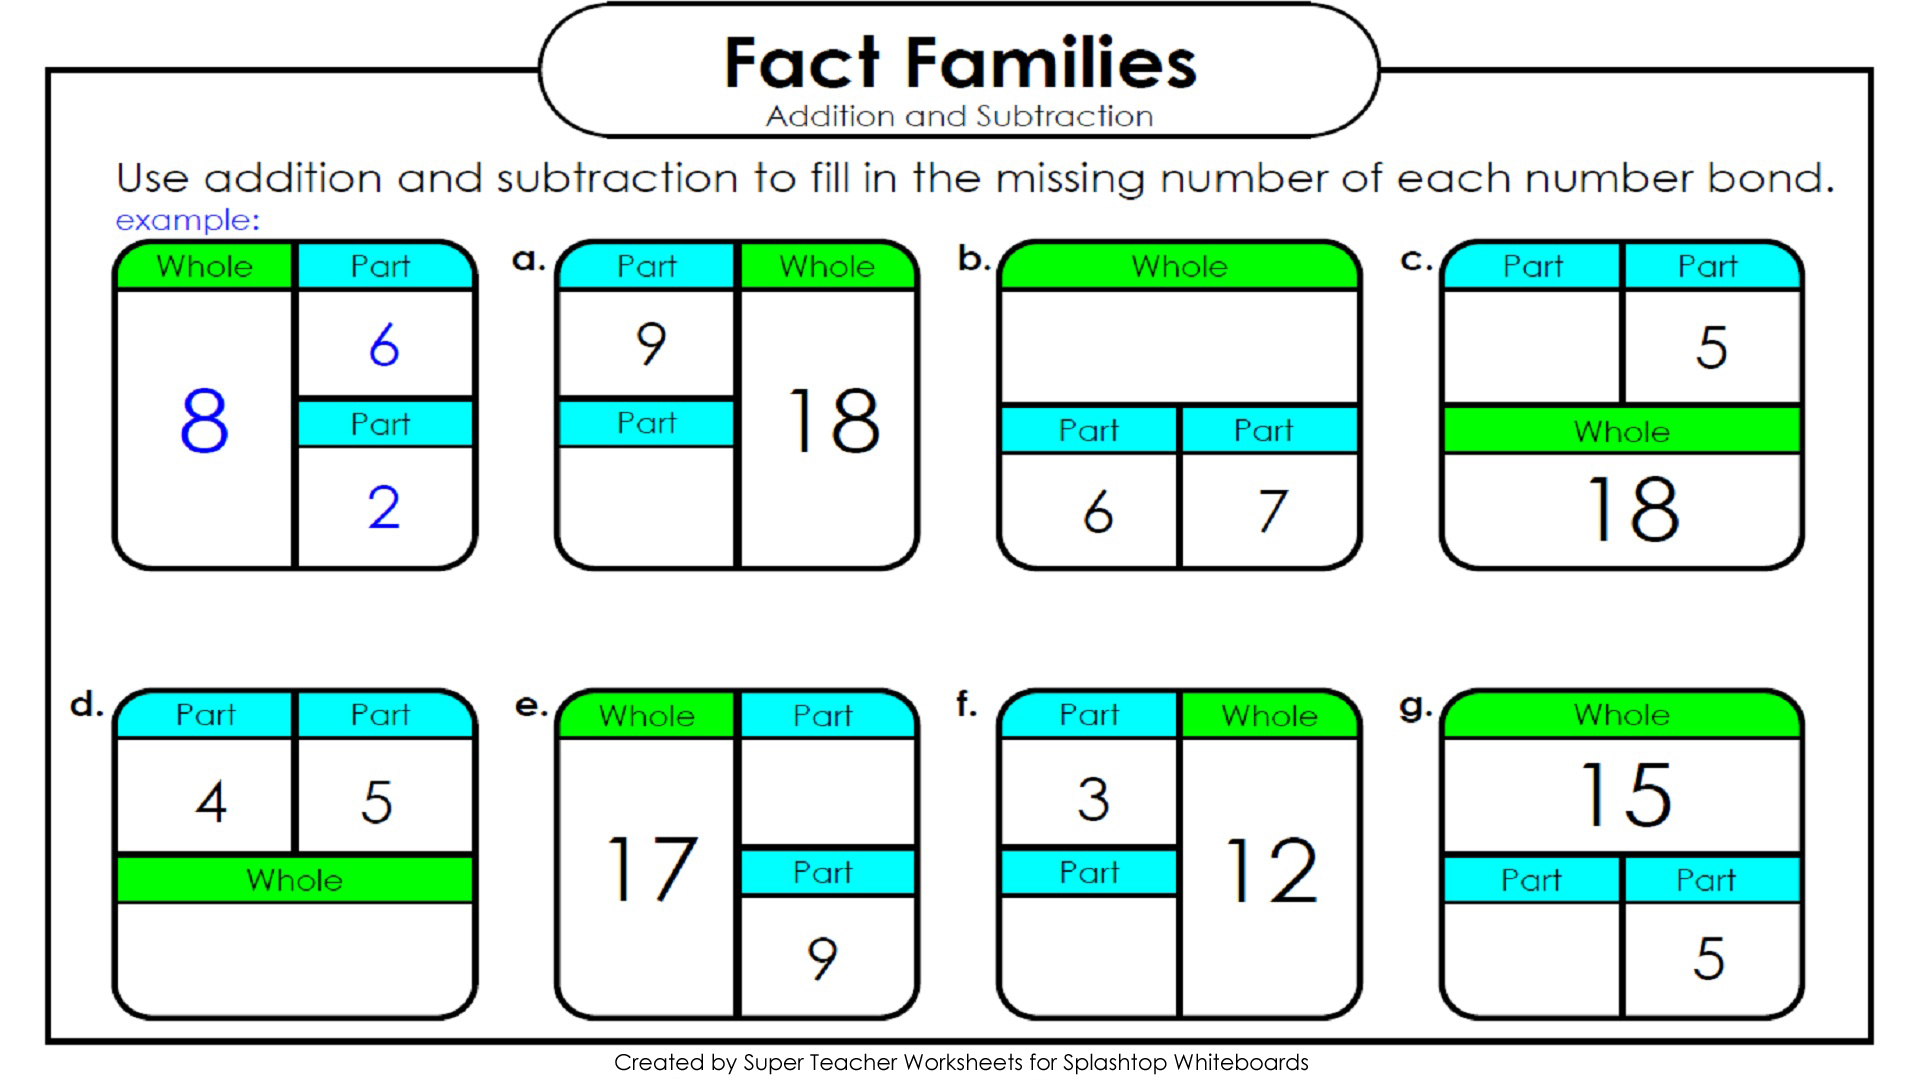 math worksheet : splashtop whiteboard background graphics : Super Teacher Worksheets Addition And Subtraction